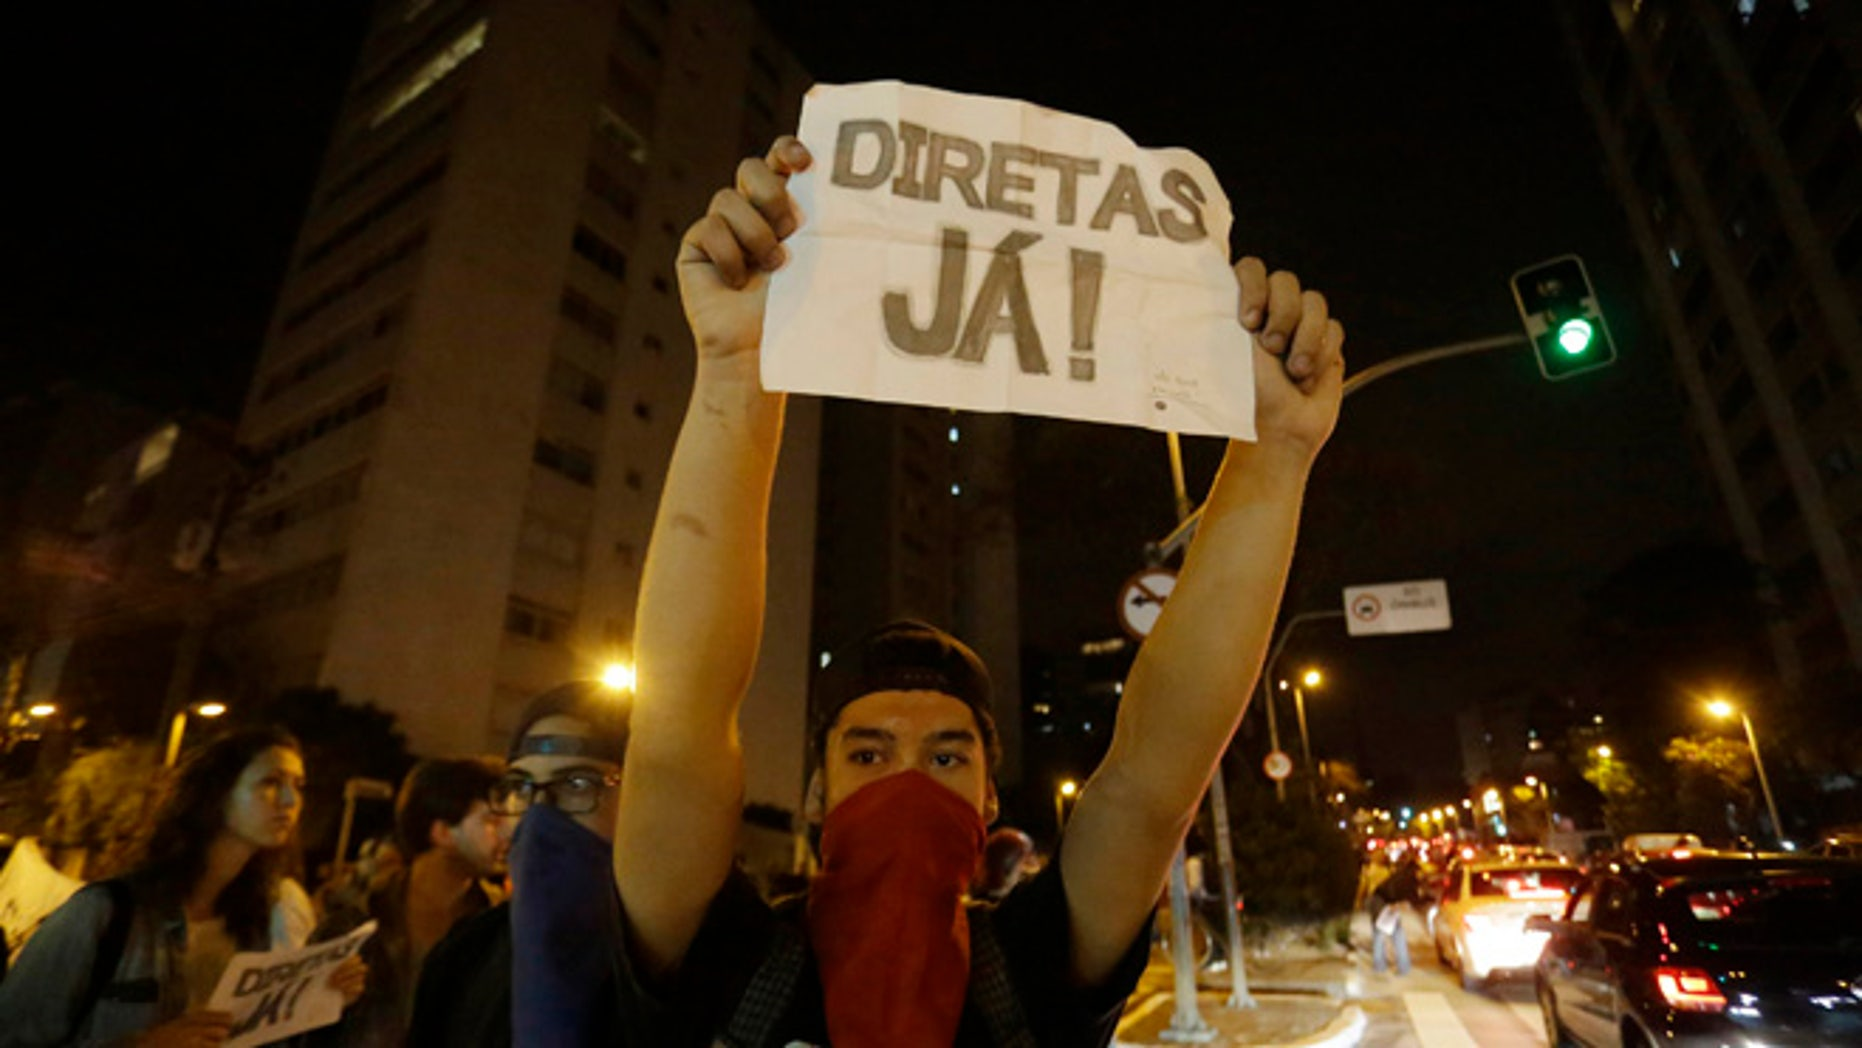 """A man holds a sign that reads """"Elections now"""" during a protest against President Michel Temer in Sao Paulo, Brazil, Sunday, Sept. 4, 2016. Temer was sworn in as Brazil's new leader on Wednesday following the ouster of President Dilma Rousseff. (AP Photo/Nelson Antoine)"""